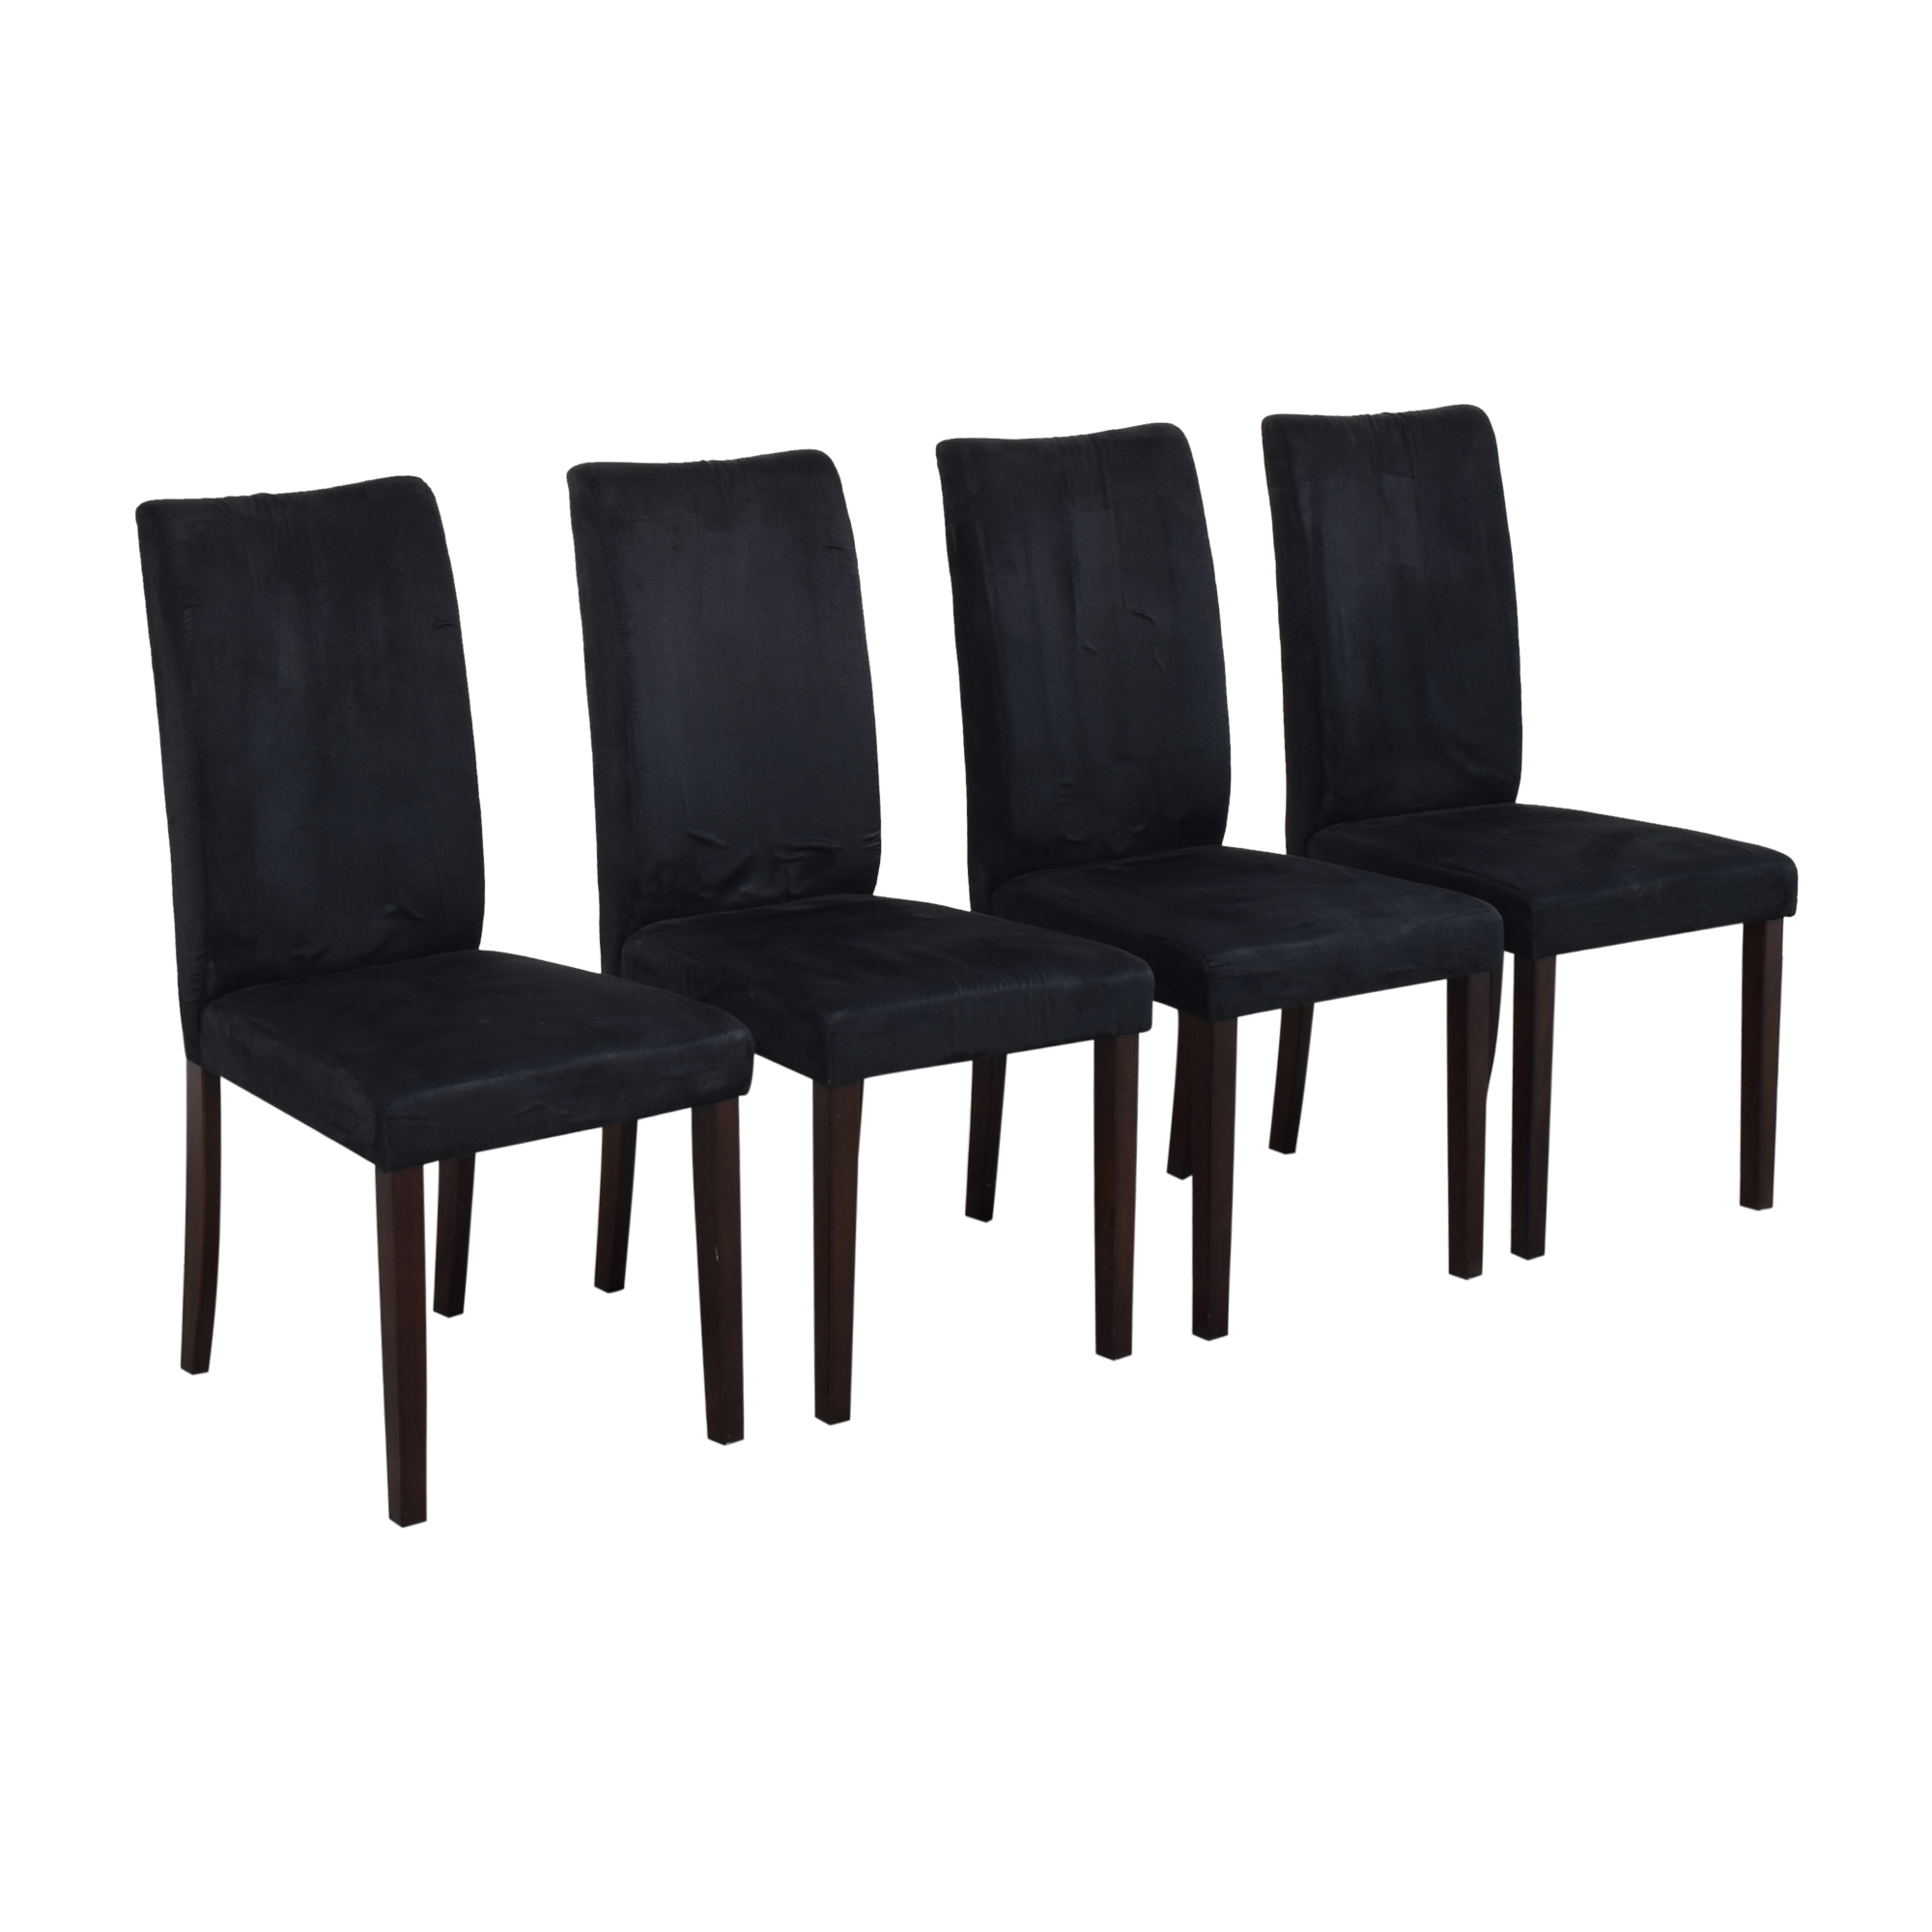 High Back Dining Chairs / Dining Chairs